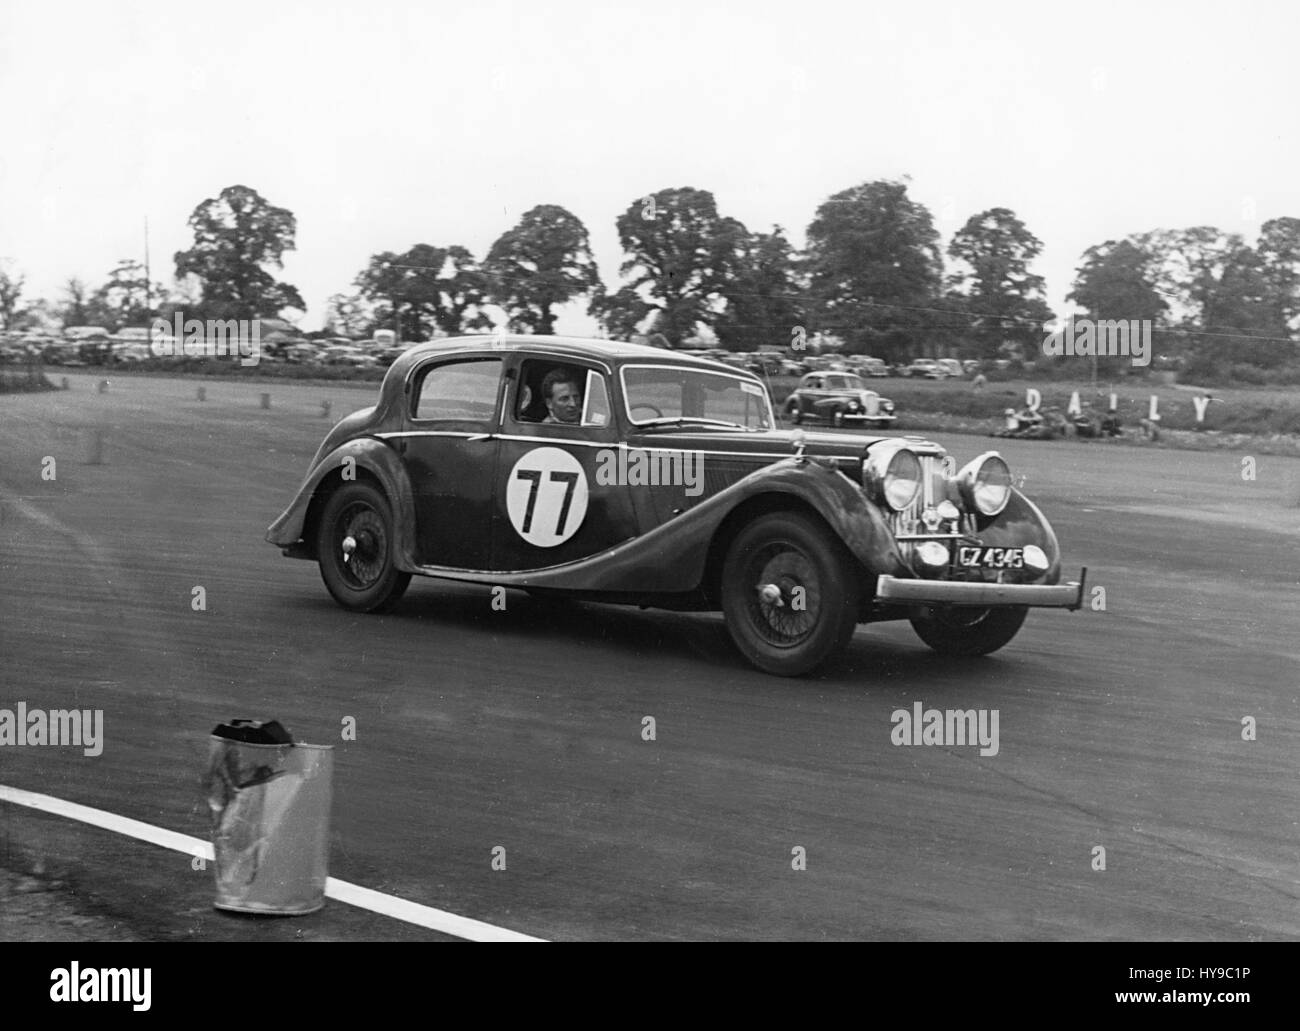 1946 Jaguar 3.5 litre at the Eight Clubs meeting Silverstone - Stock Image